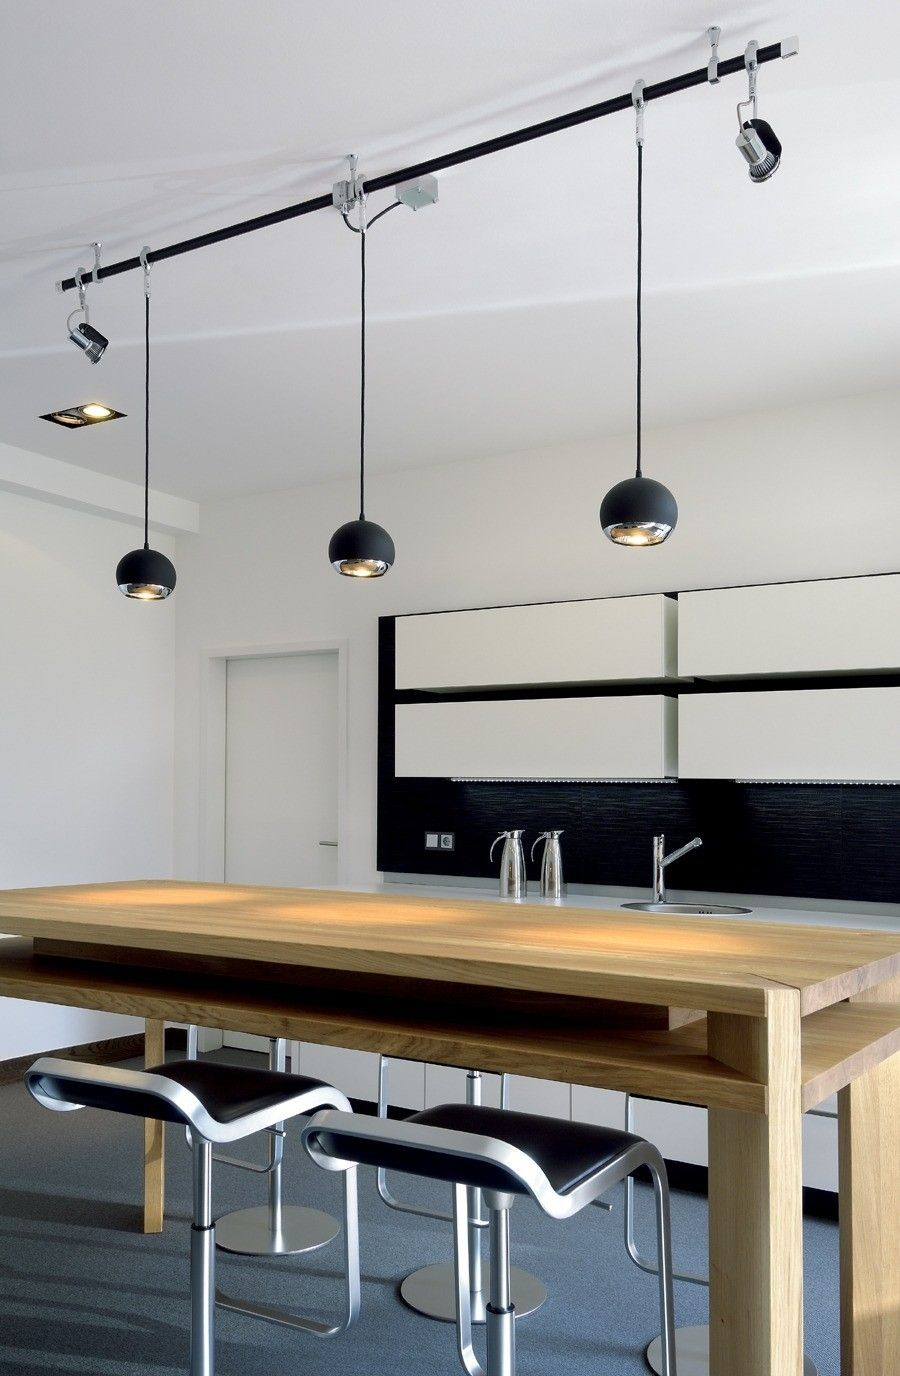 Cool track lighting for a kitchen pinteres cool track lighting for a kitchen aloadofball Images